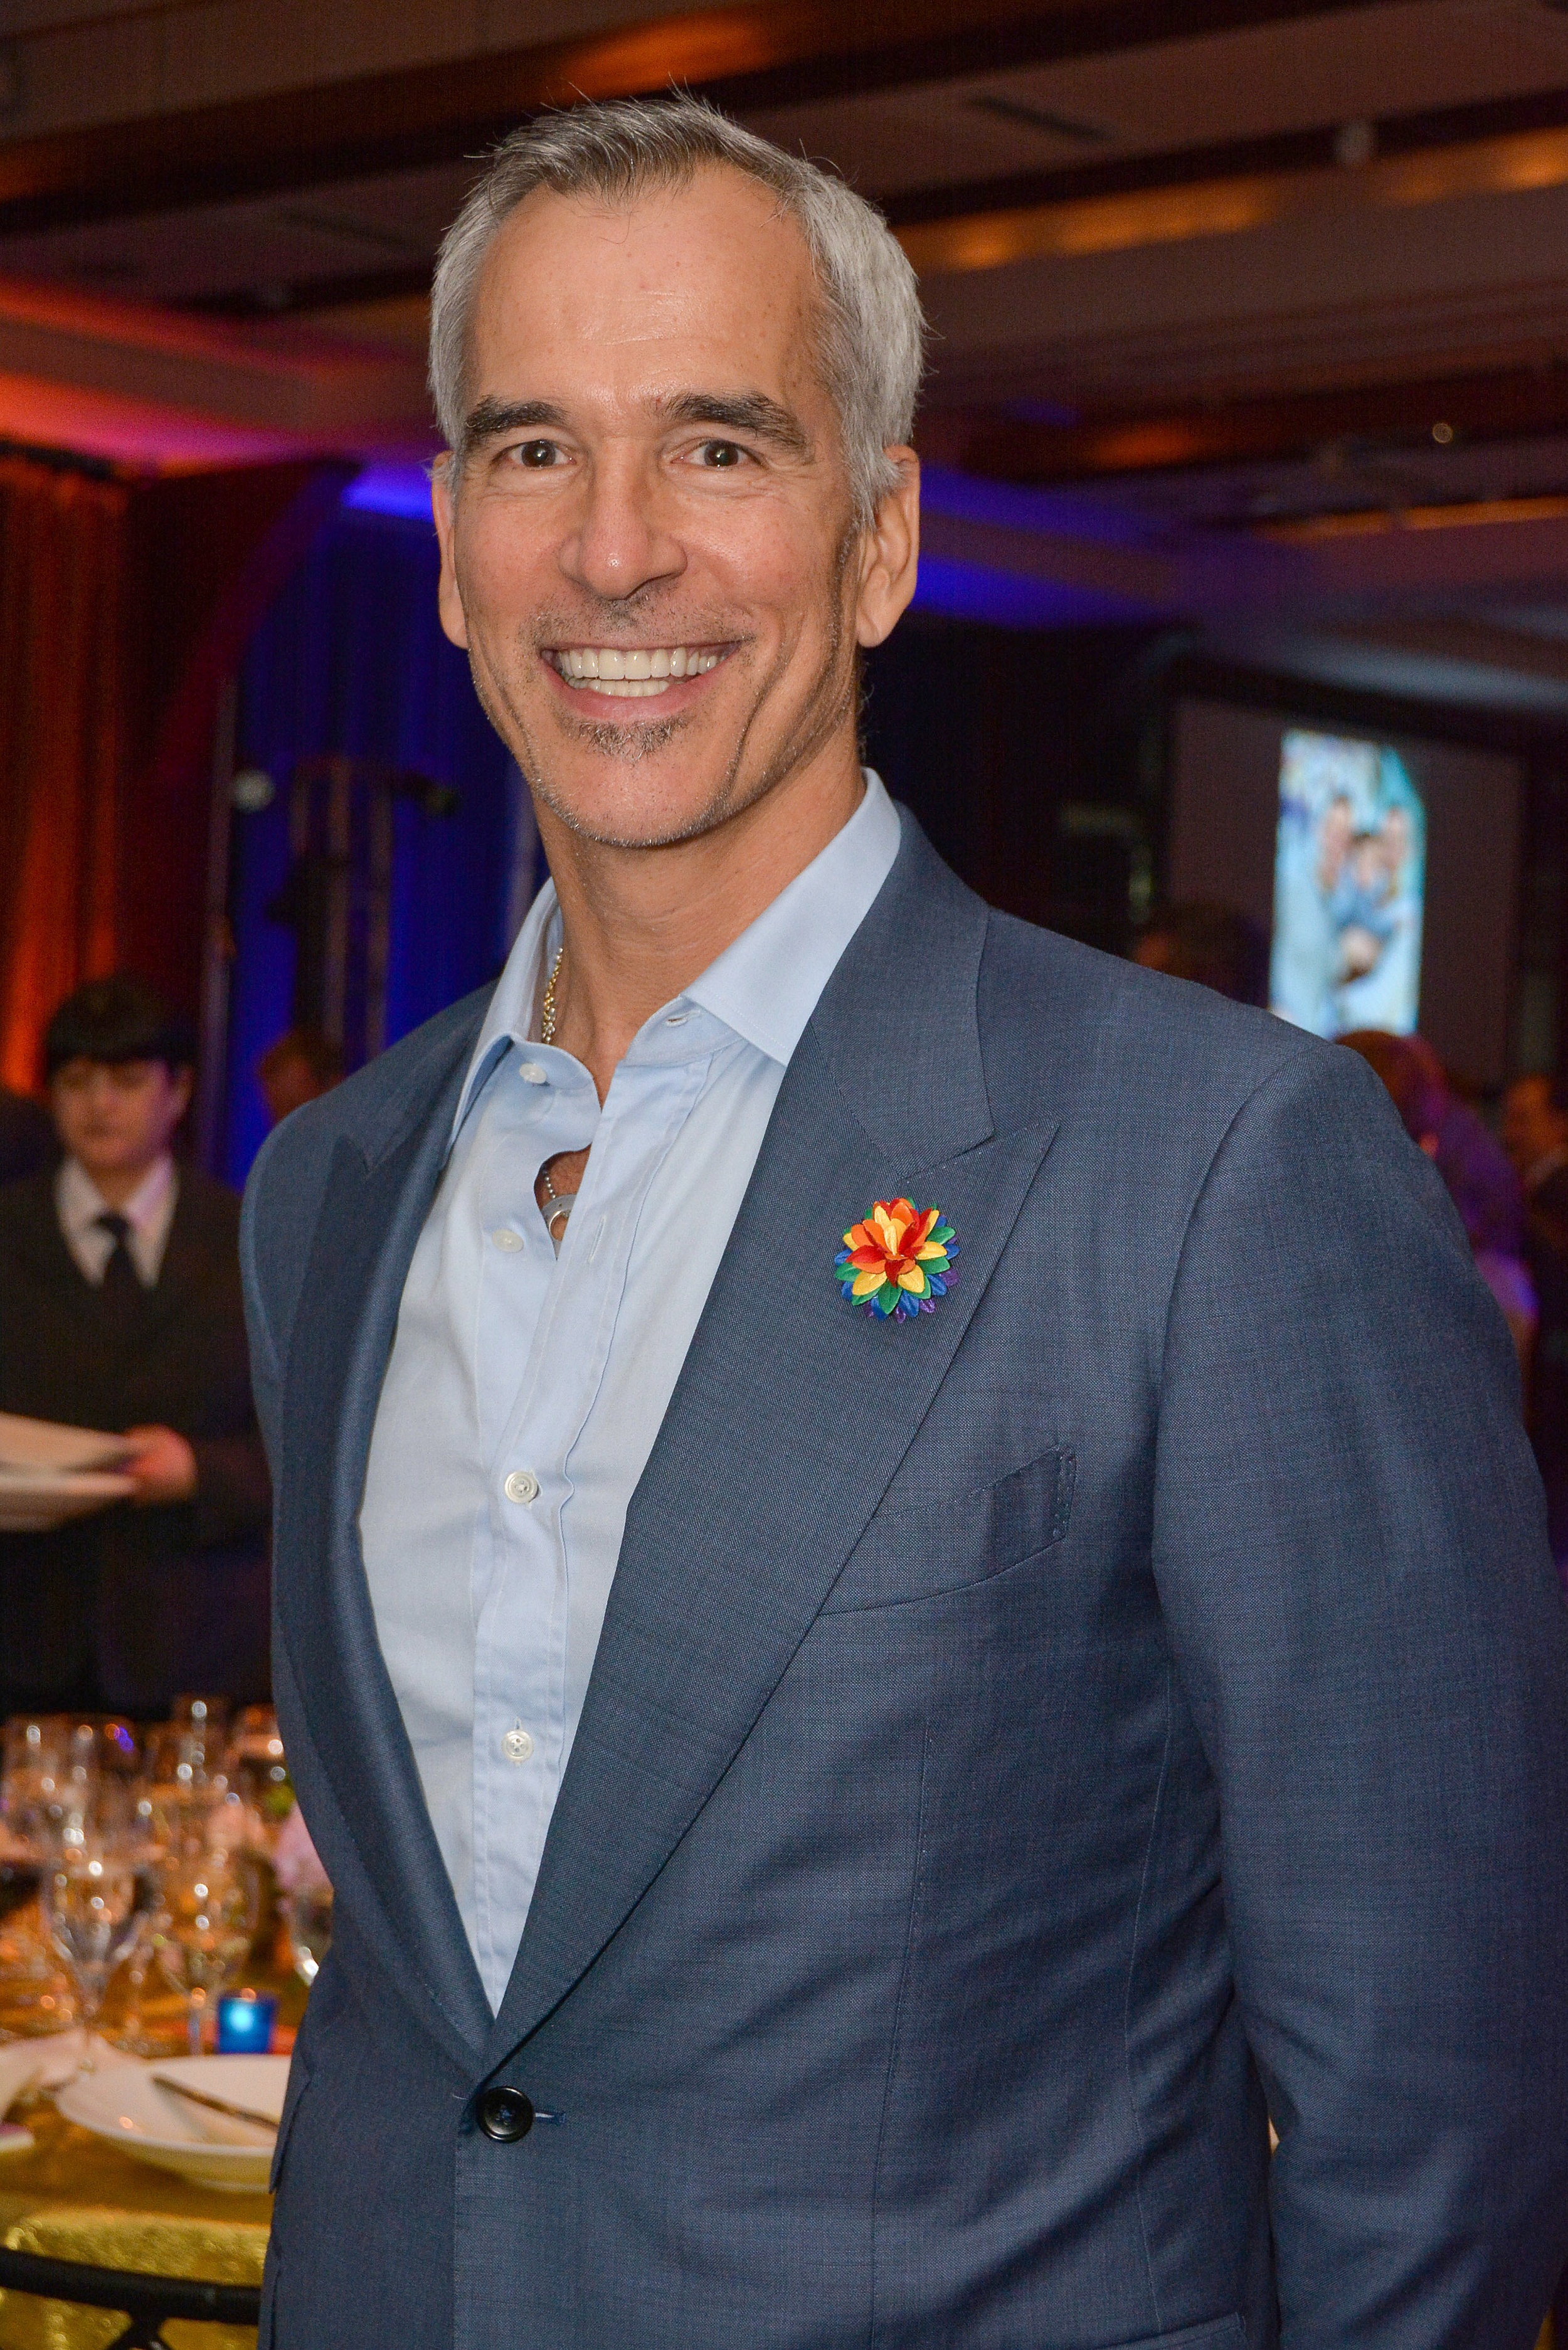 Award Winning Broadway Choreographer Jerry Mitchell wears Fleur'd Pins Pride Satin Dahlia to the 2019 Night at the Pier Gala 5.6.19 - photo by Andrew Werner.jpg